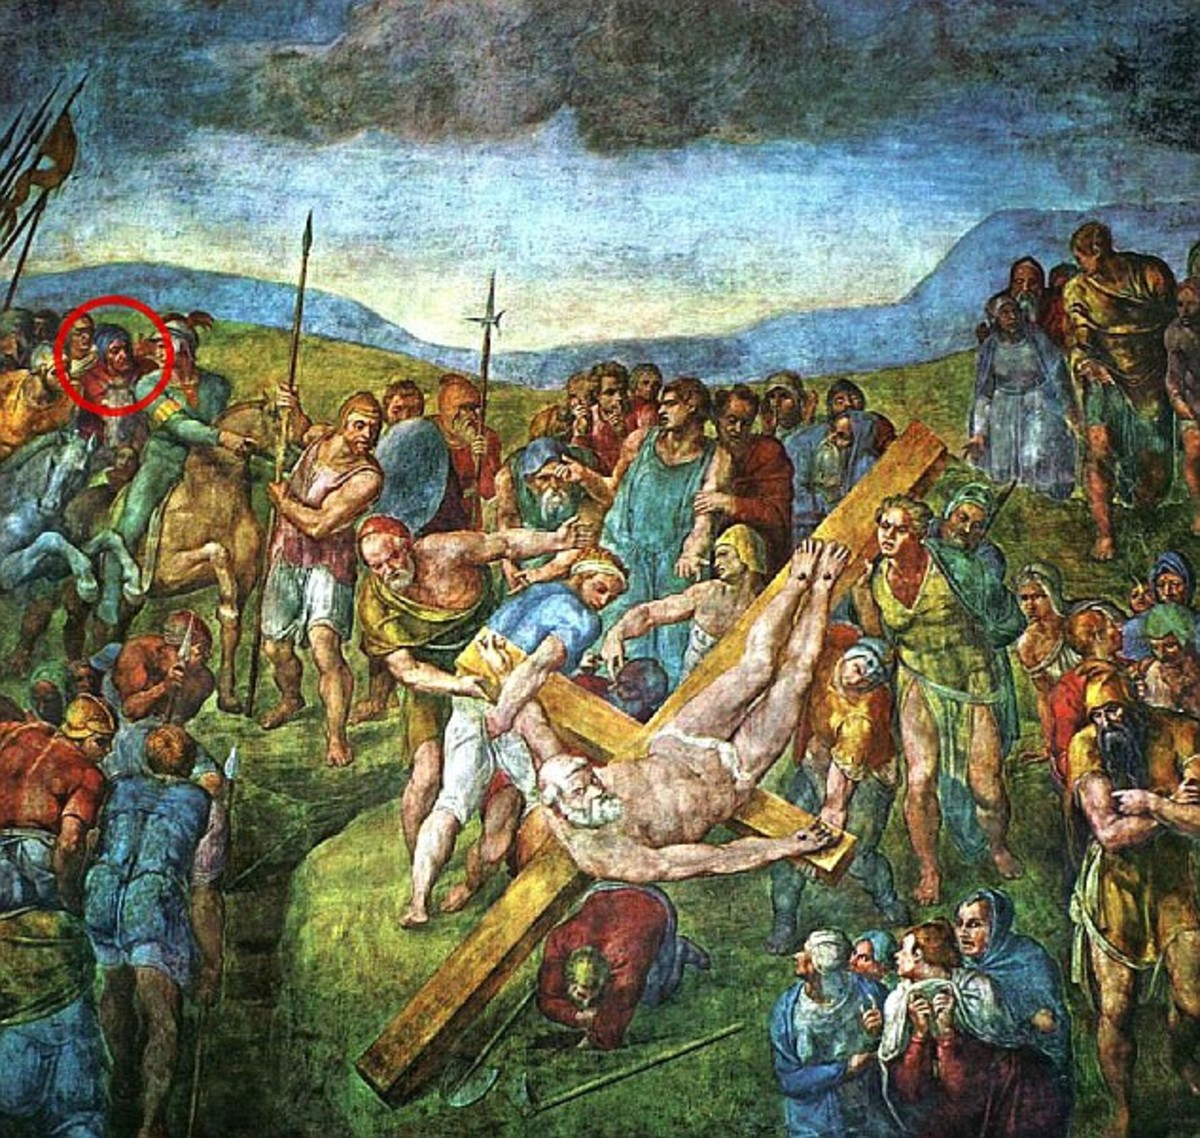 CRUCIFIXION OF ST PETER AS PAINTED BY MICHELANGELO IN 1550